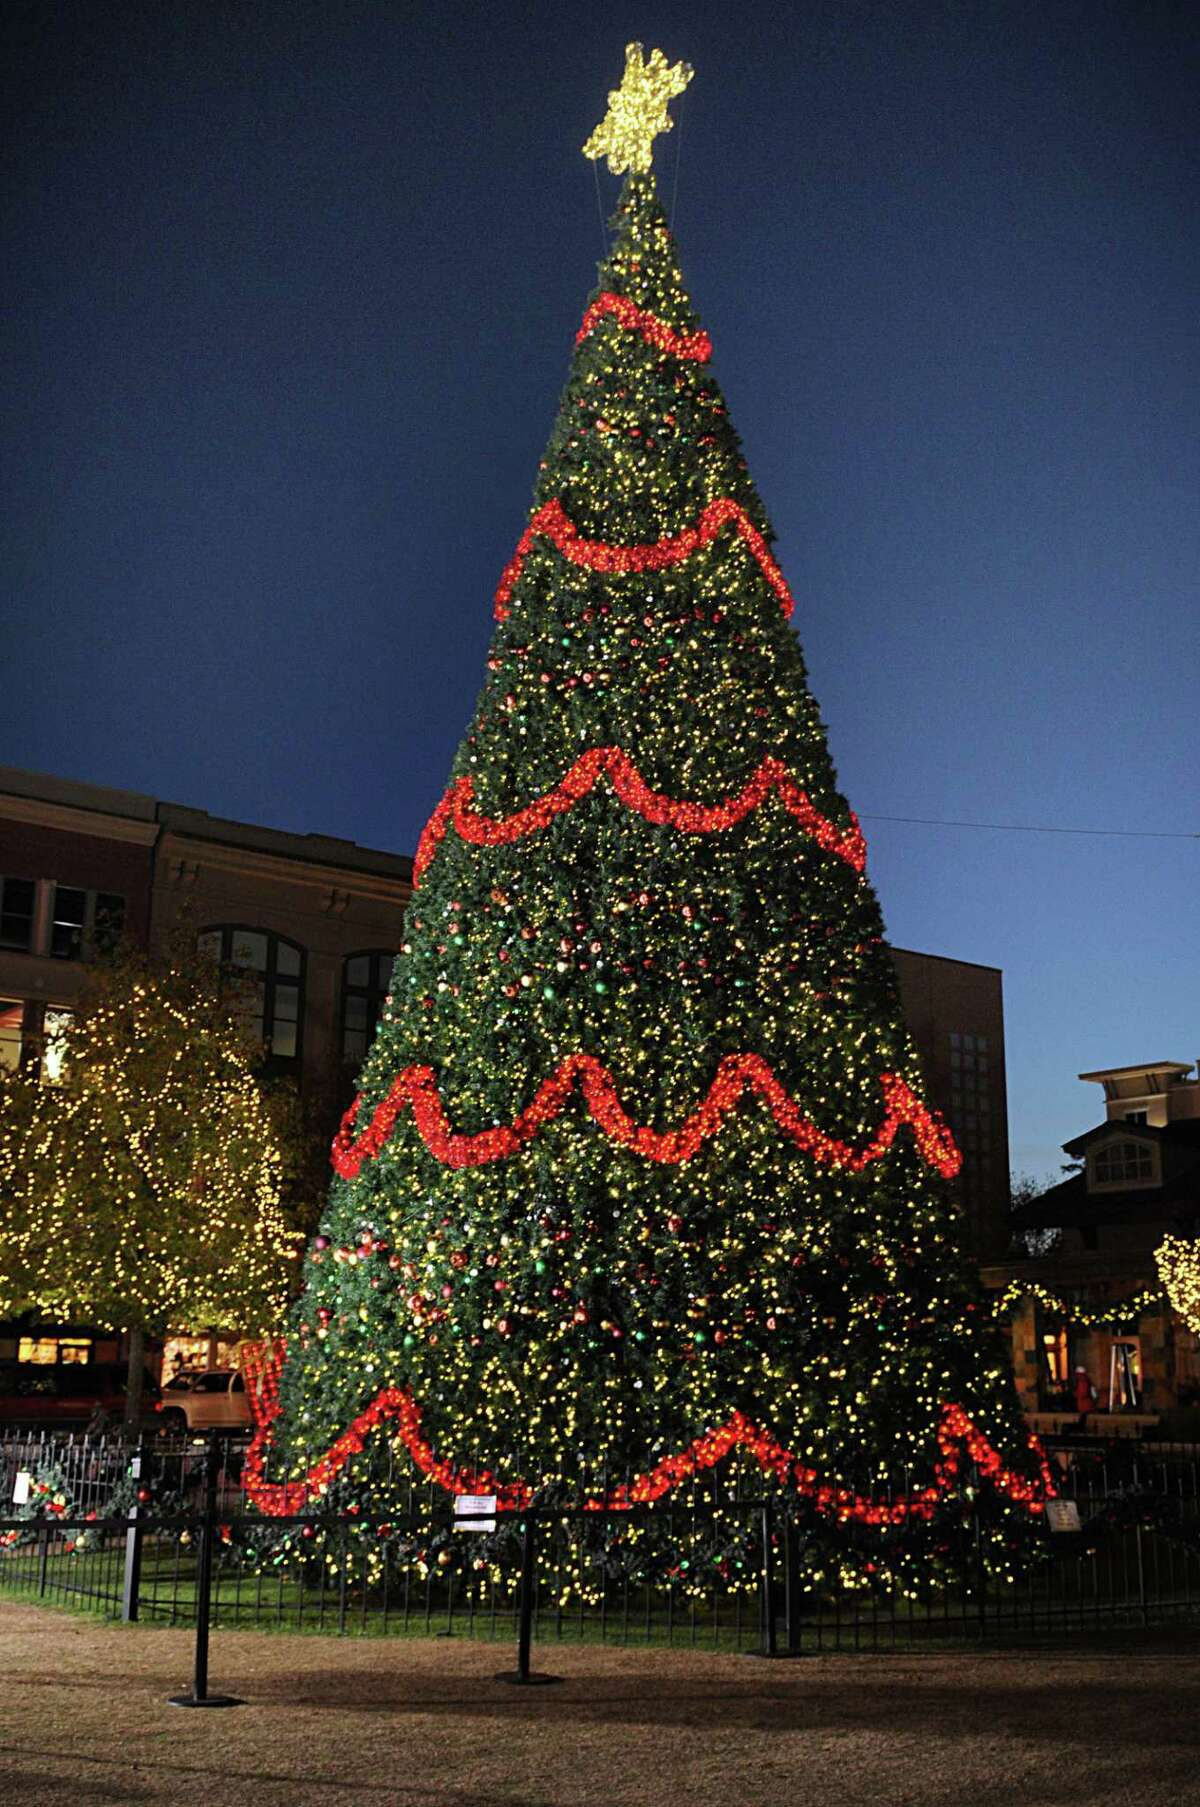 A full line-up of Christmas fun is on tap at Market Street The Woodlands for the 2020 holiday season. As the holiday season approaches, officials at one of The Woodlands premier shopping venues - Market Street - have unveiled a slate of both in-person and online